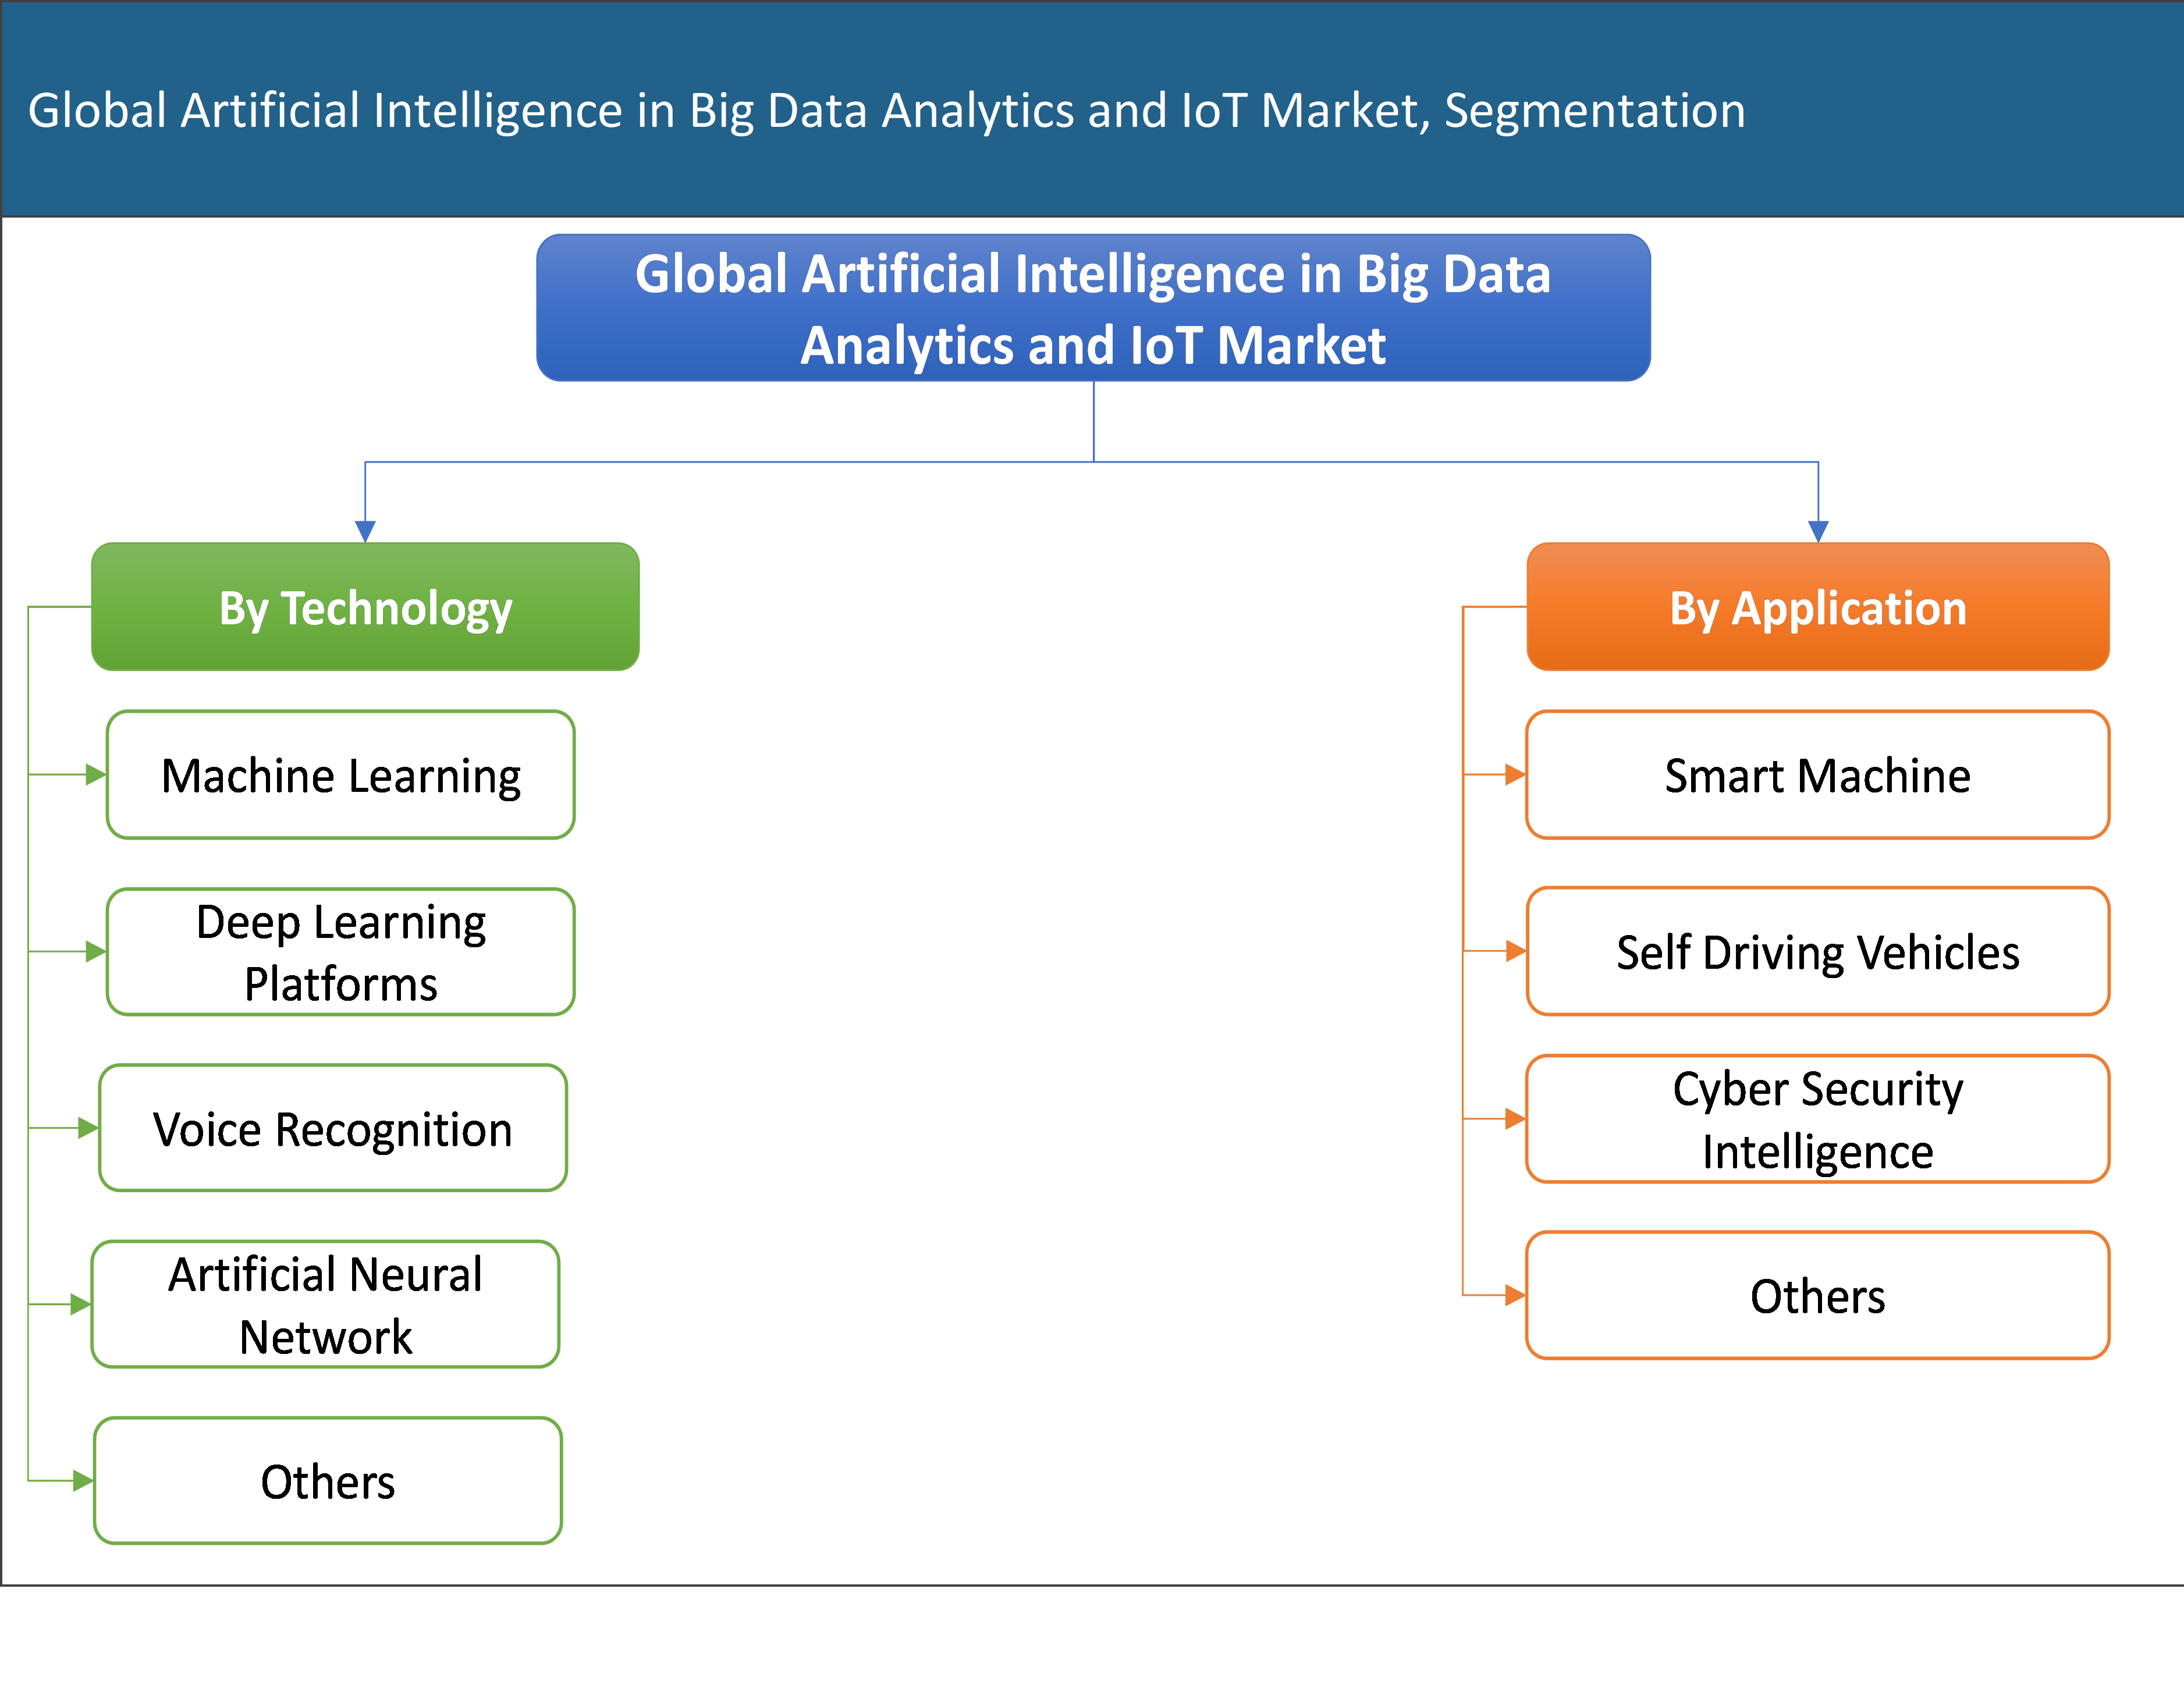 Global Artificial Intelligence in Big Data Analytics and IoT Market